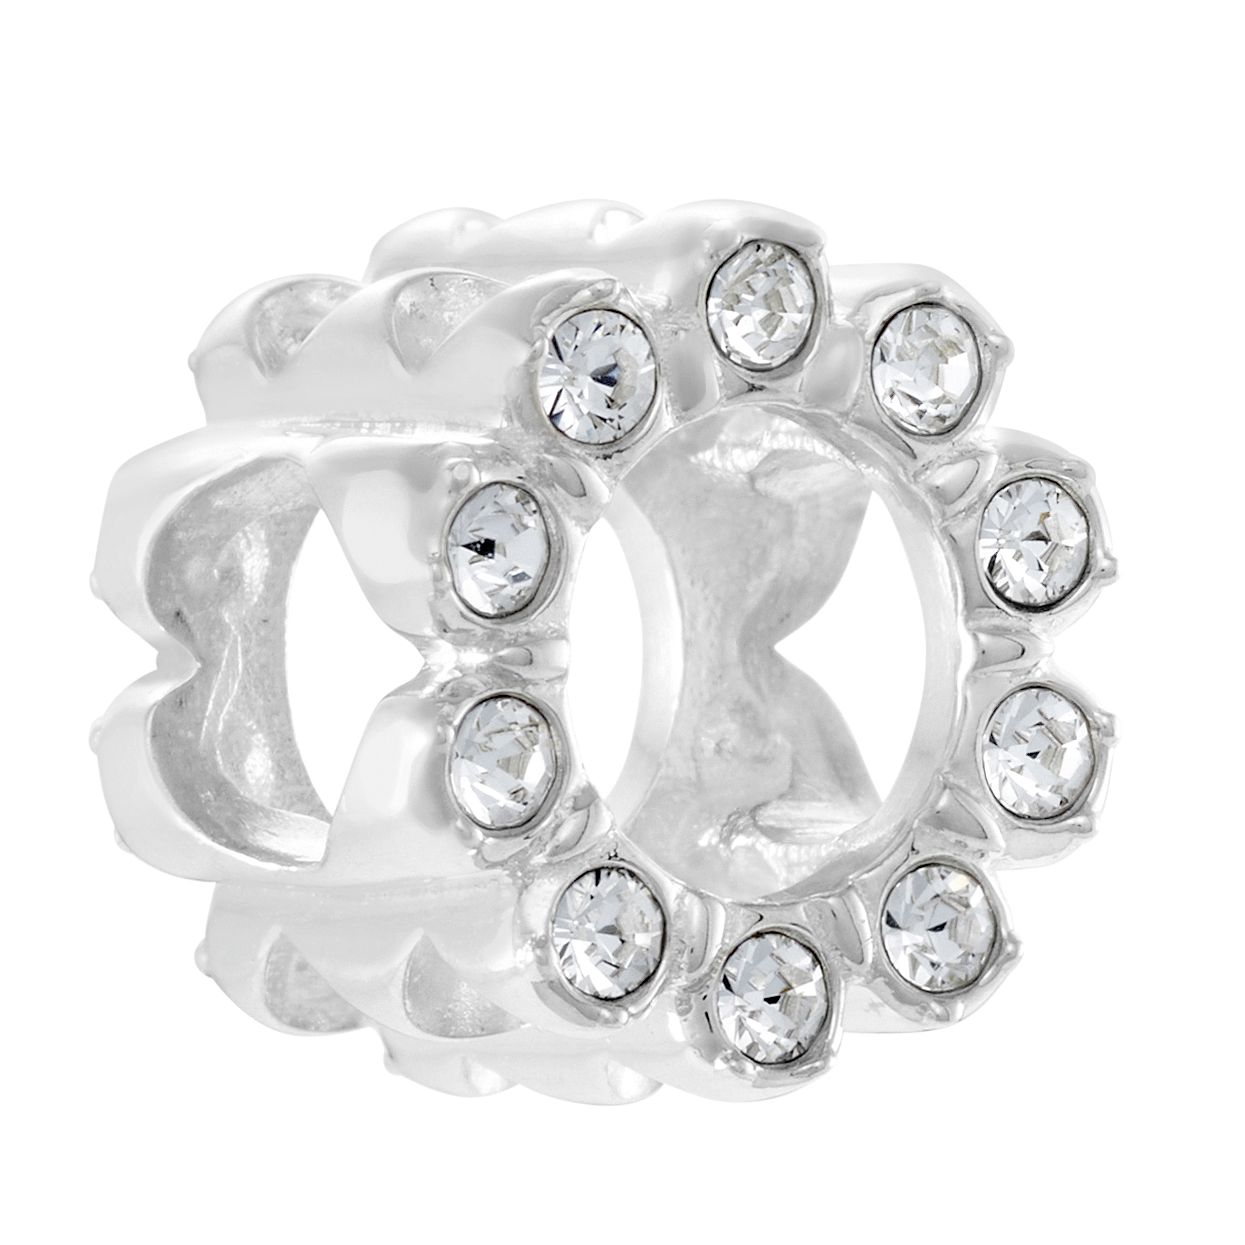 Chamilia Sparkle Blossom Swarovski Crystal Charm - Product number 3175278